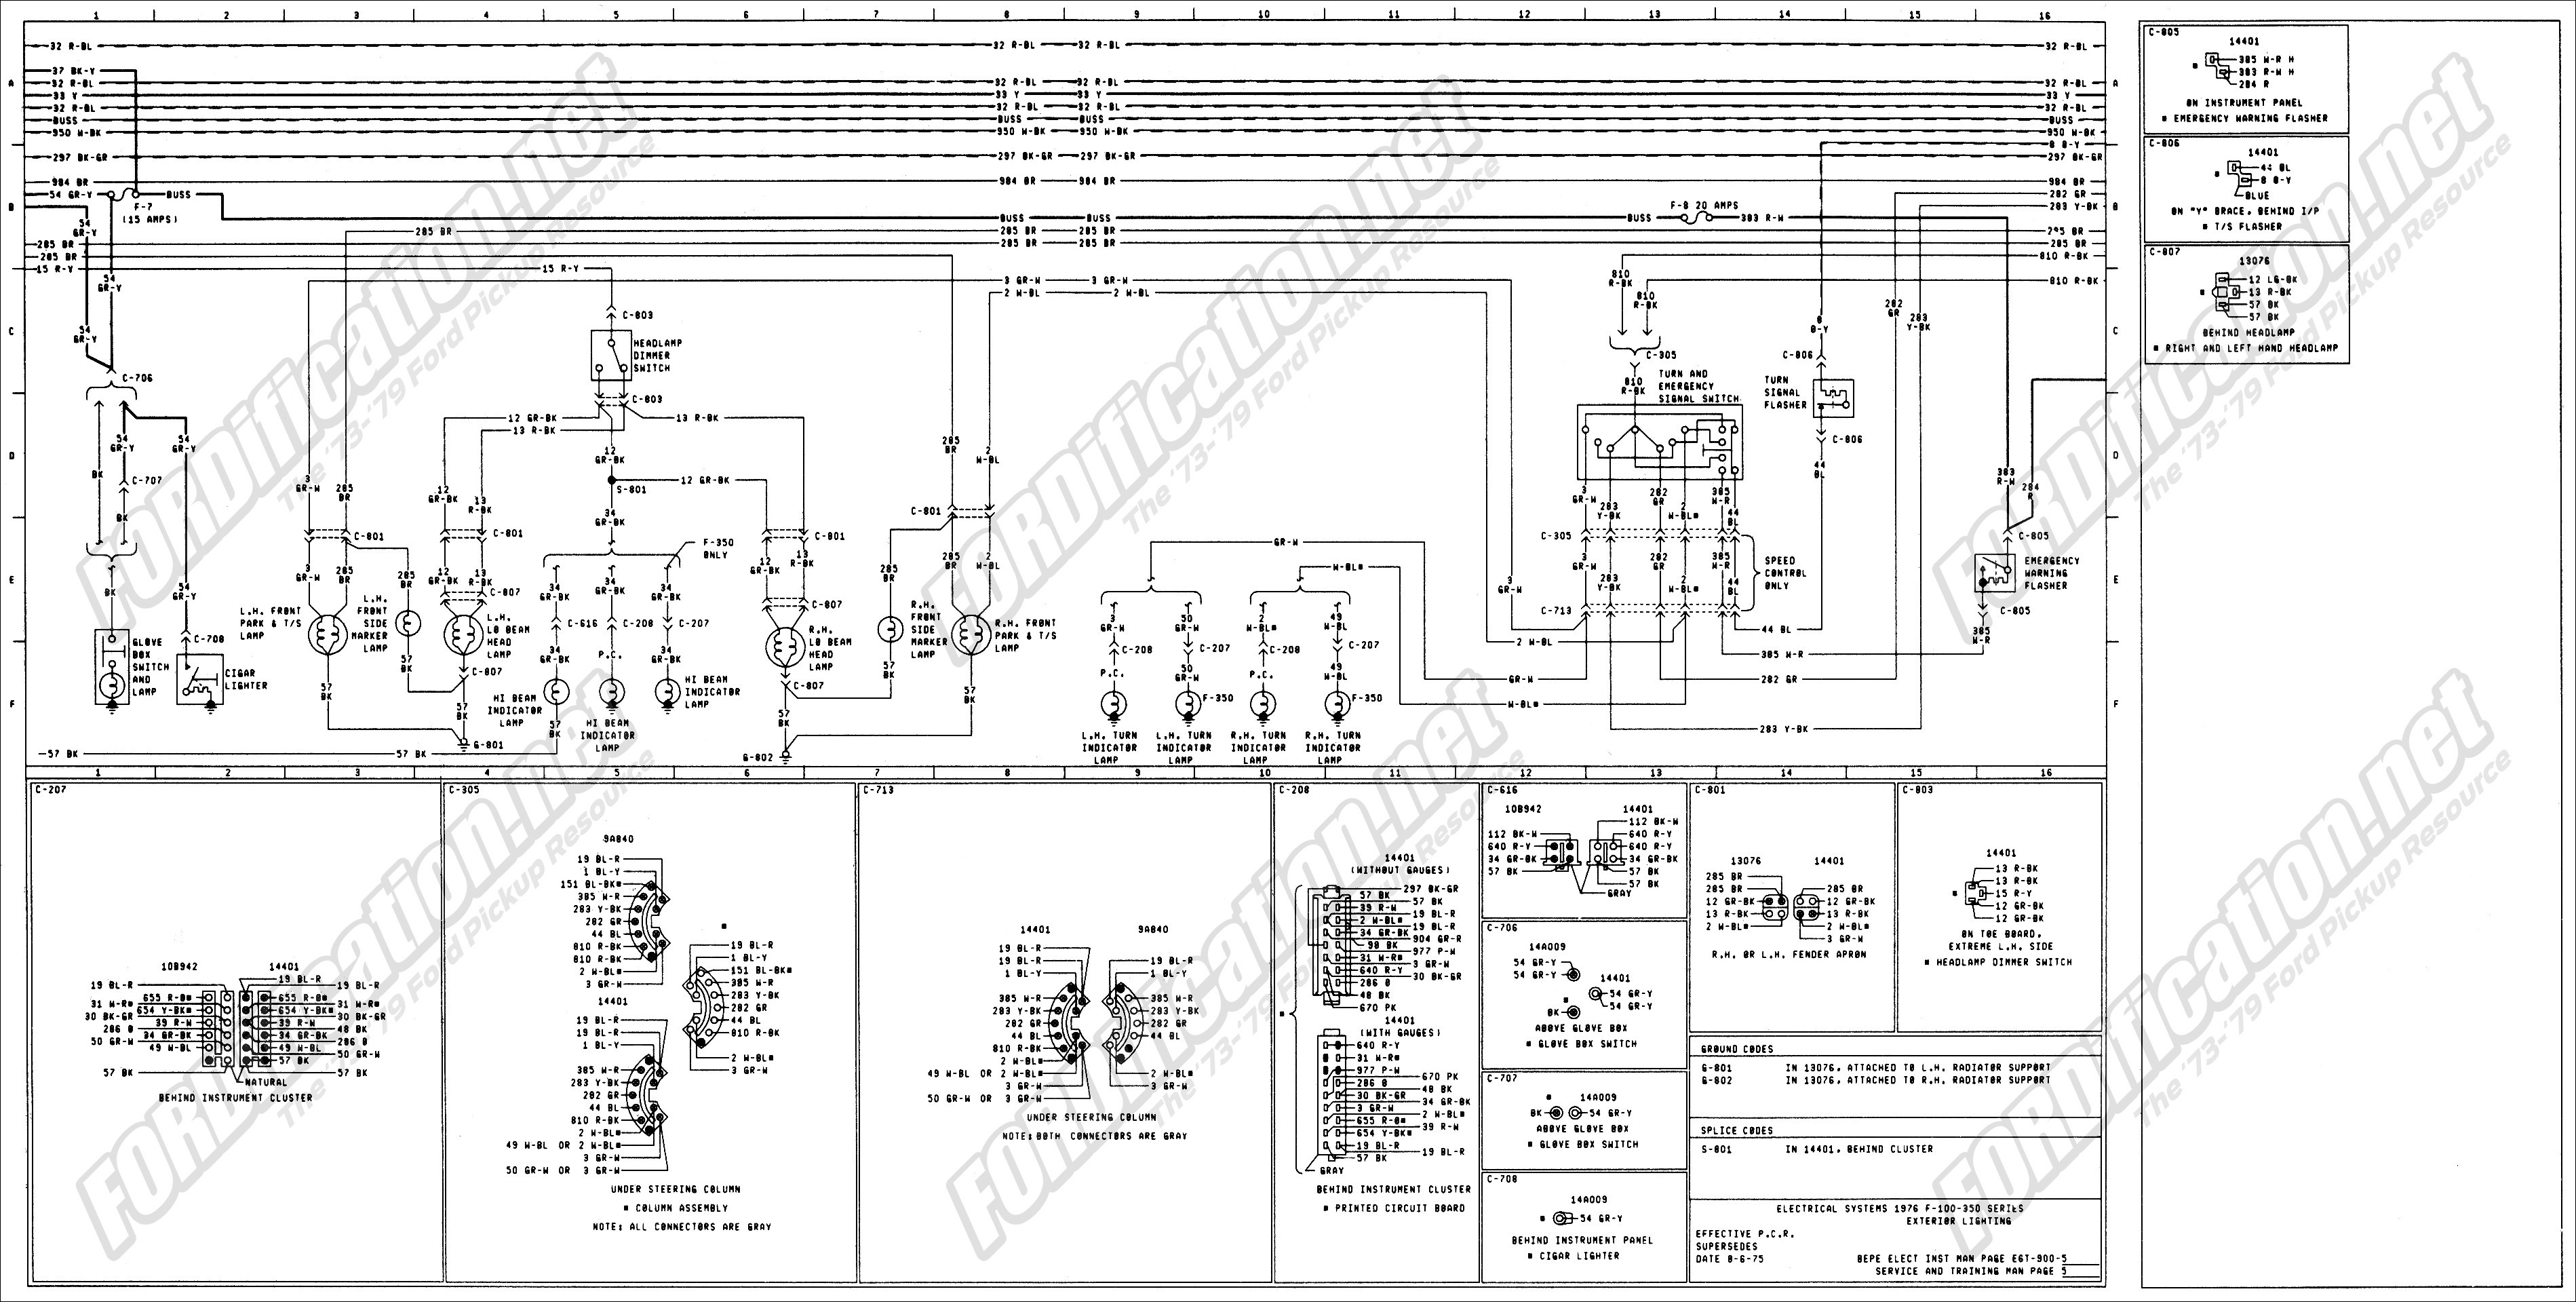 Ford F250 Trailer Wiring Diagram | Releaseganji - Trailer Wiring Diagram F250